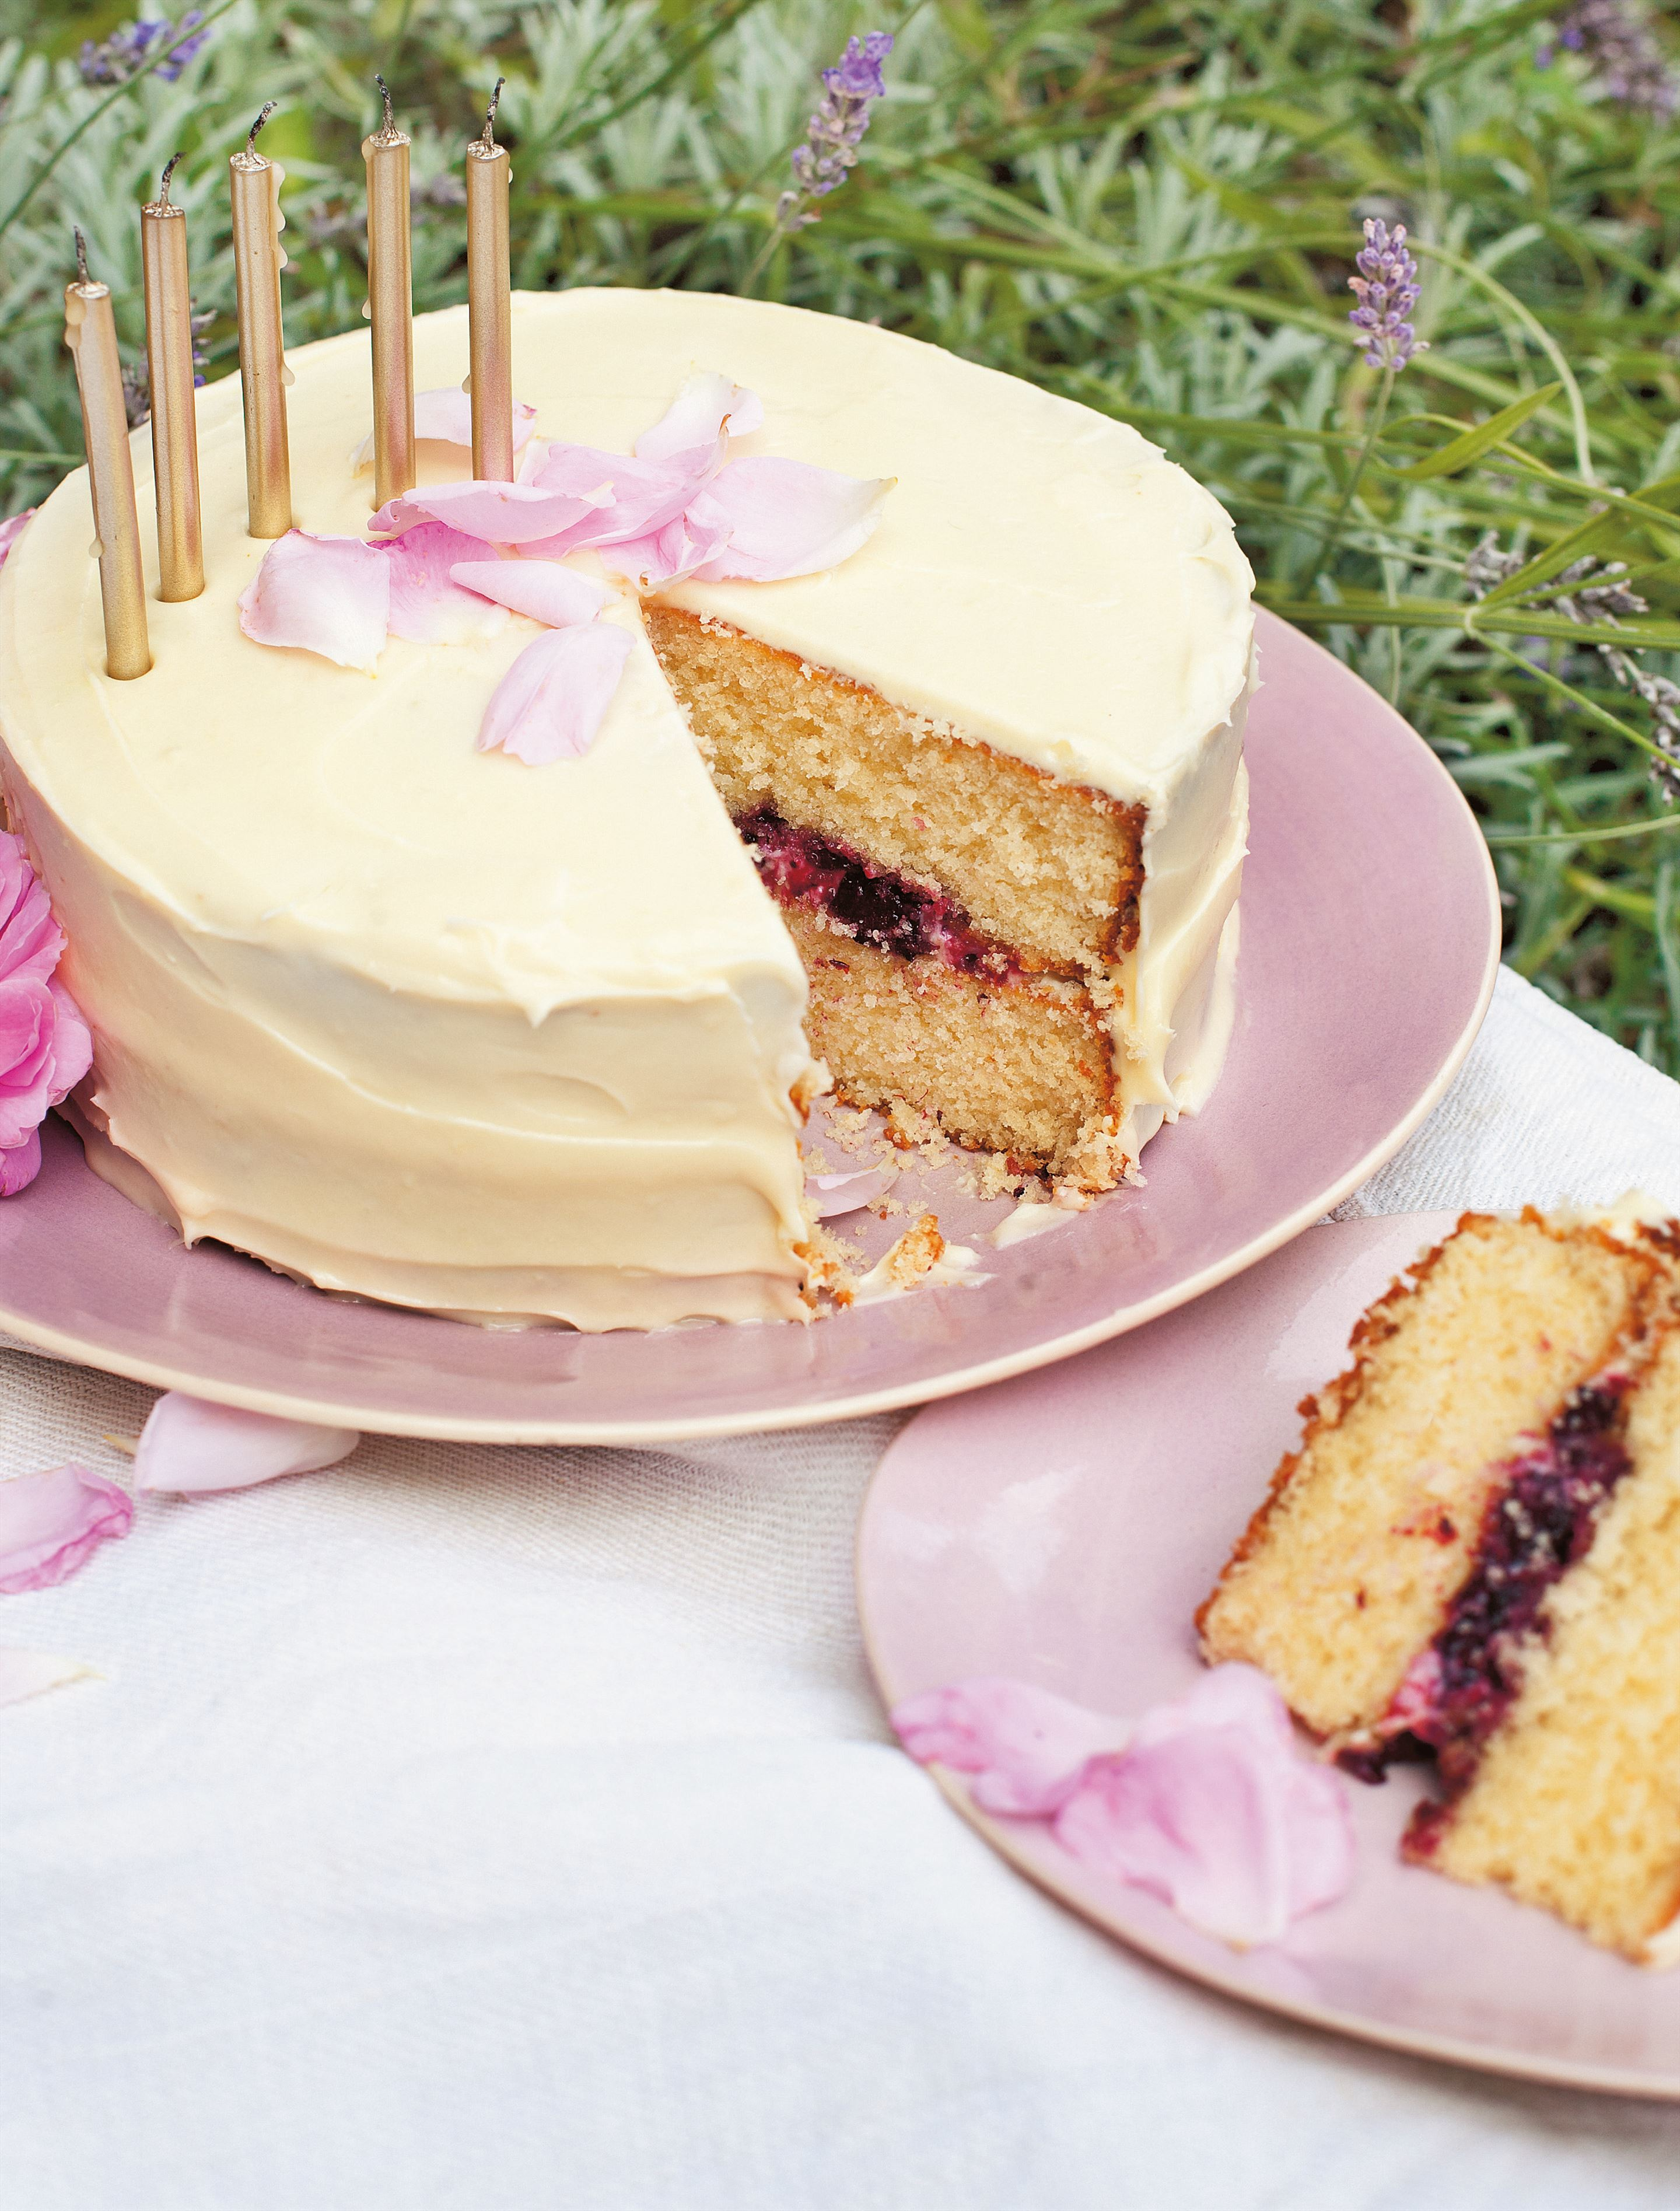 Blackberry, lavender, rose and white chocolate cake